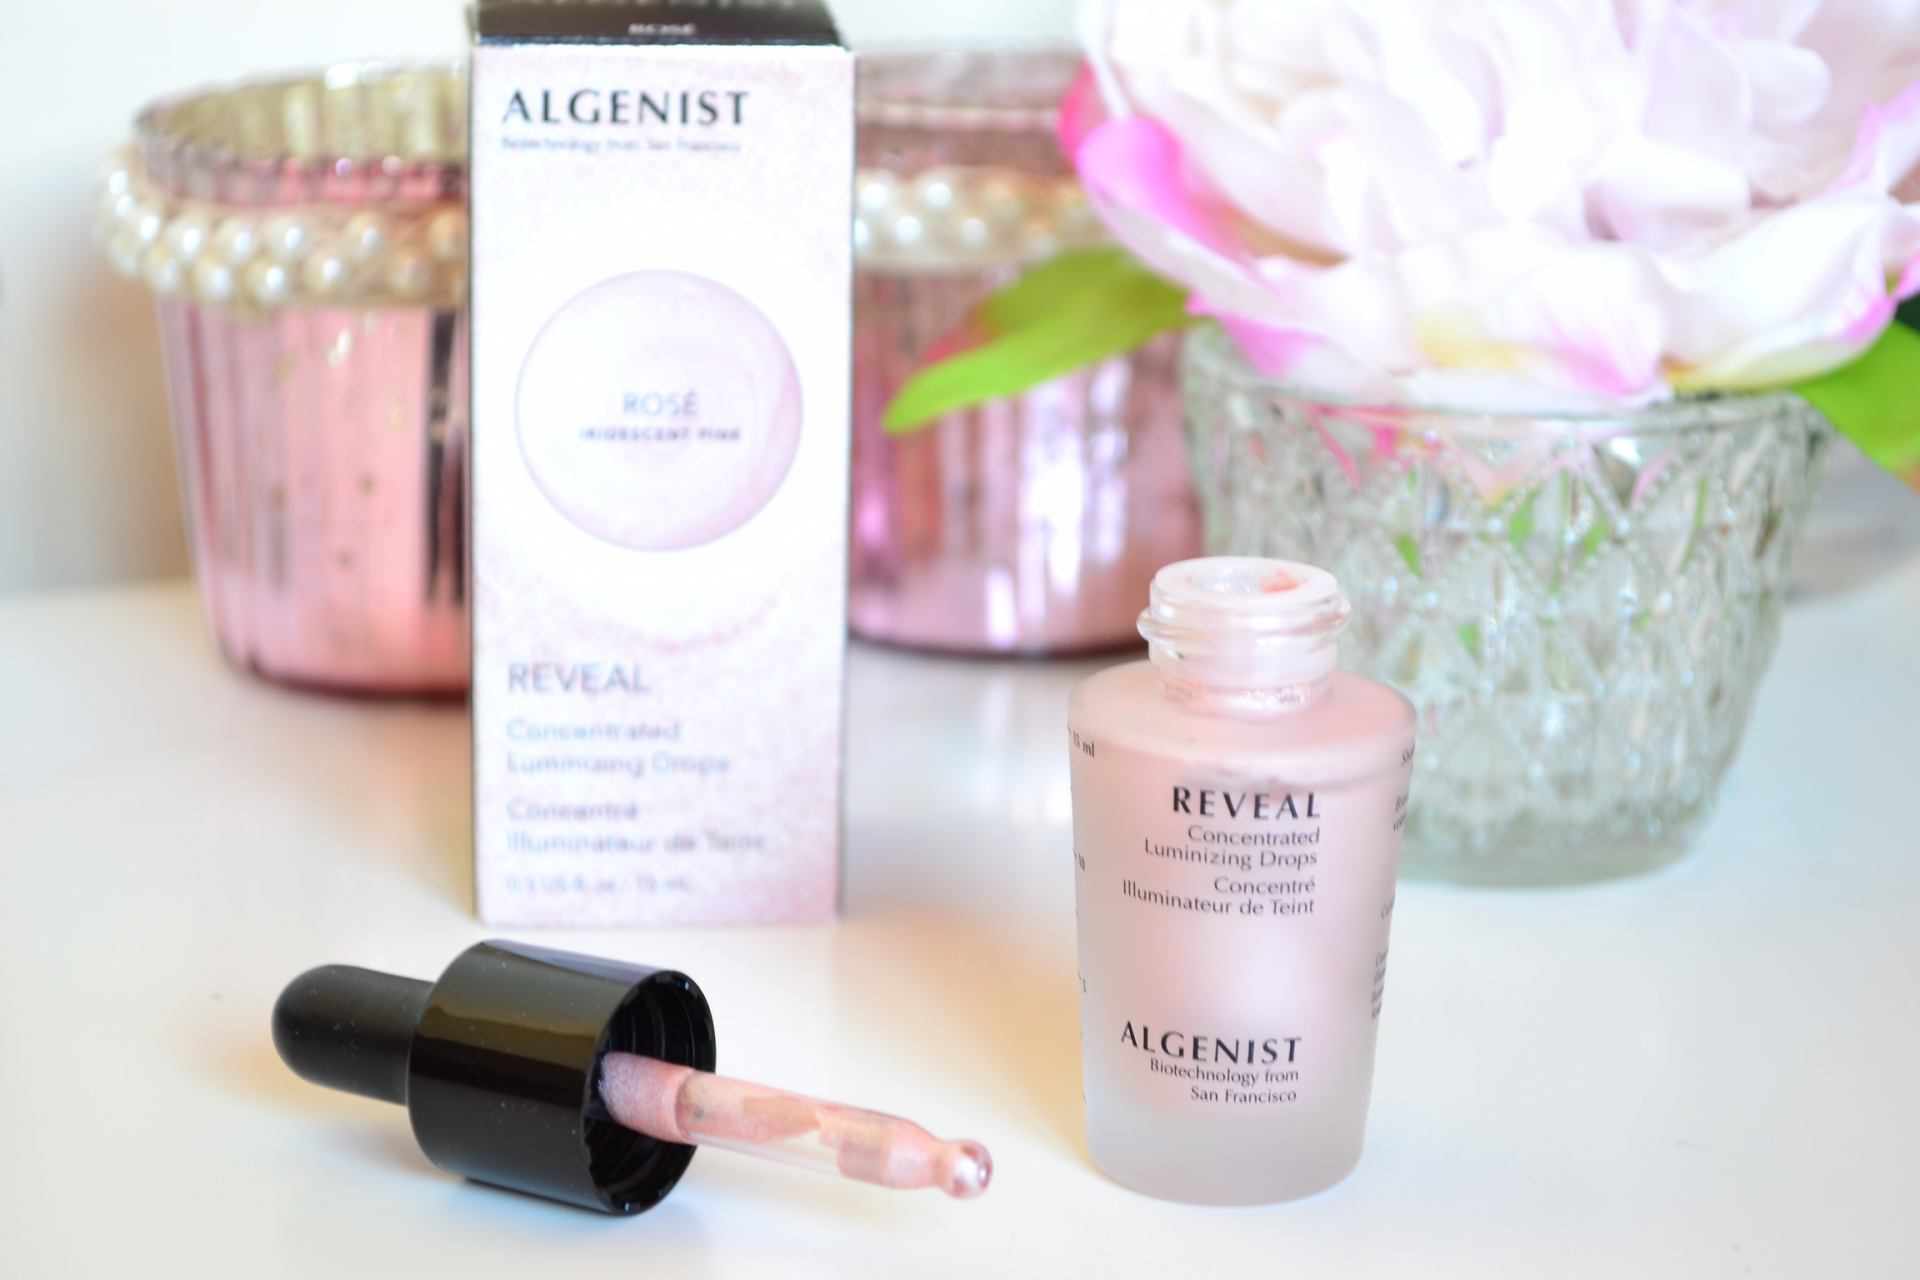 algenist-reveal-concentrated-luminizing-drops-review-beauty